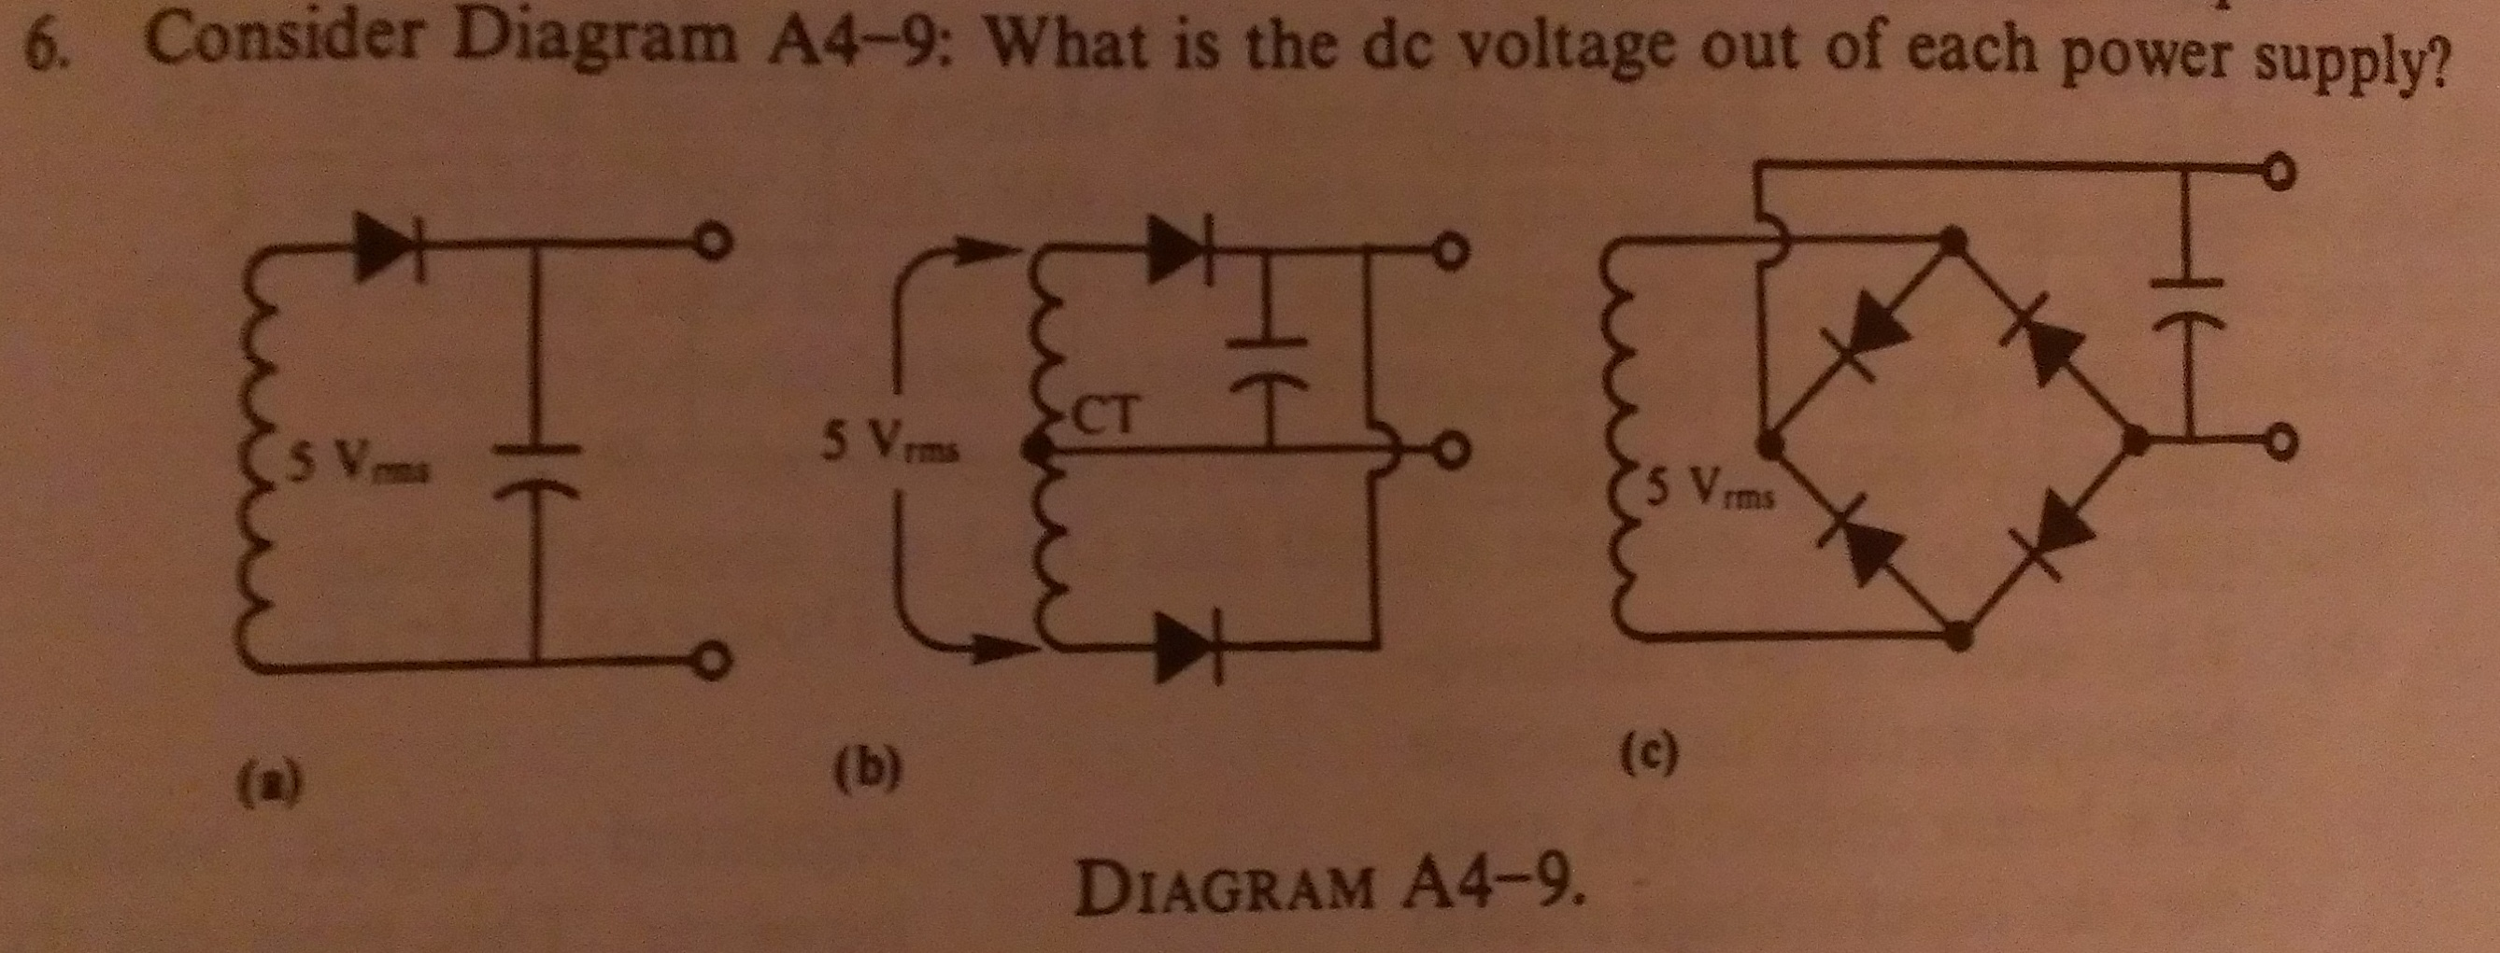 Consider Diagram A4-9; What is the dc voltage out